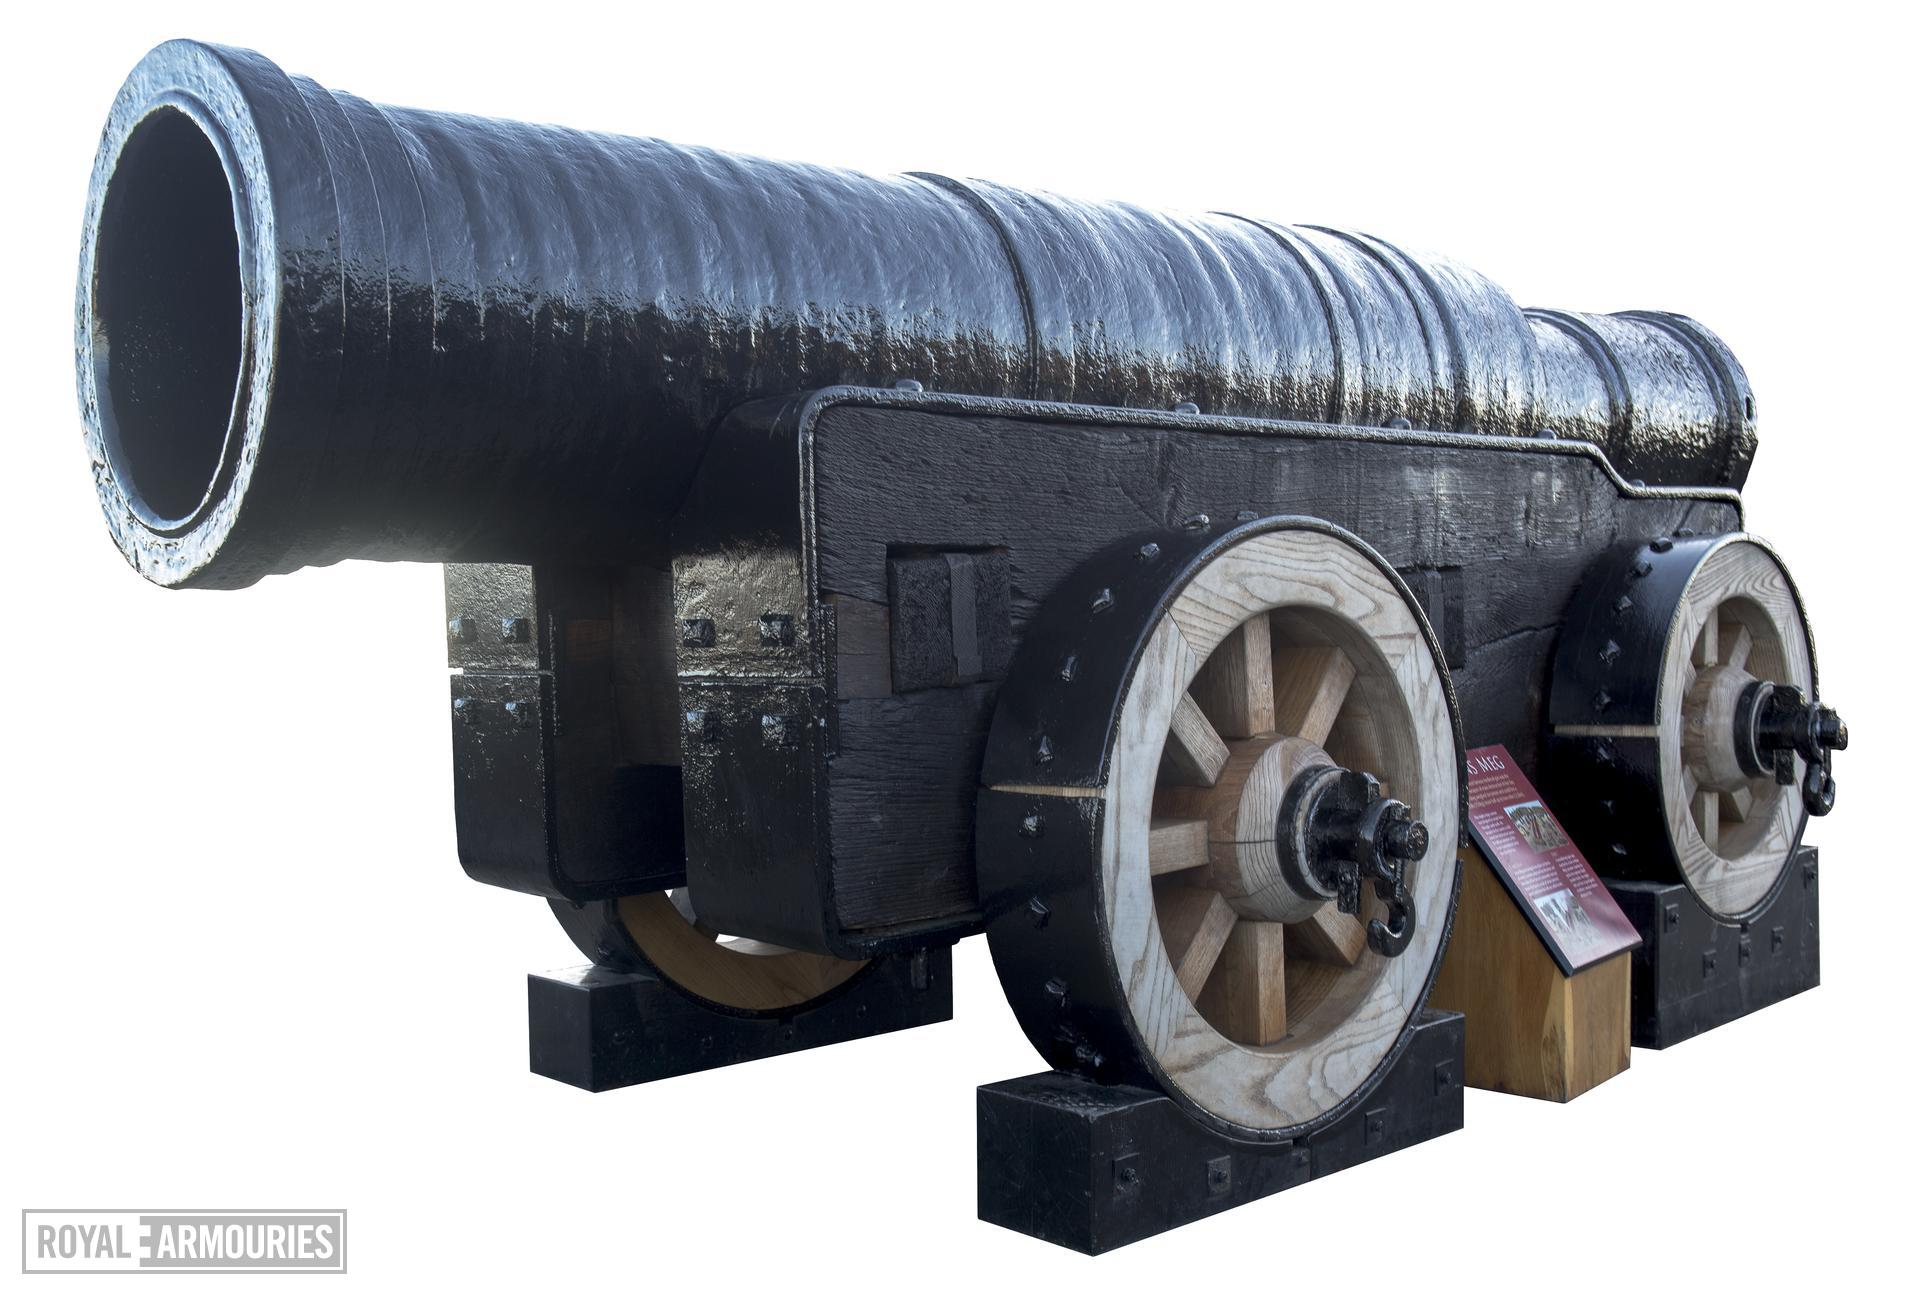 19.5 in bombard and carriage - Mons Meg